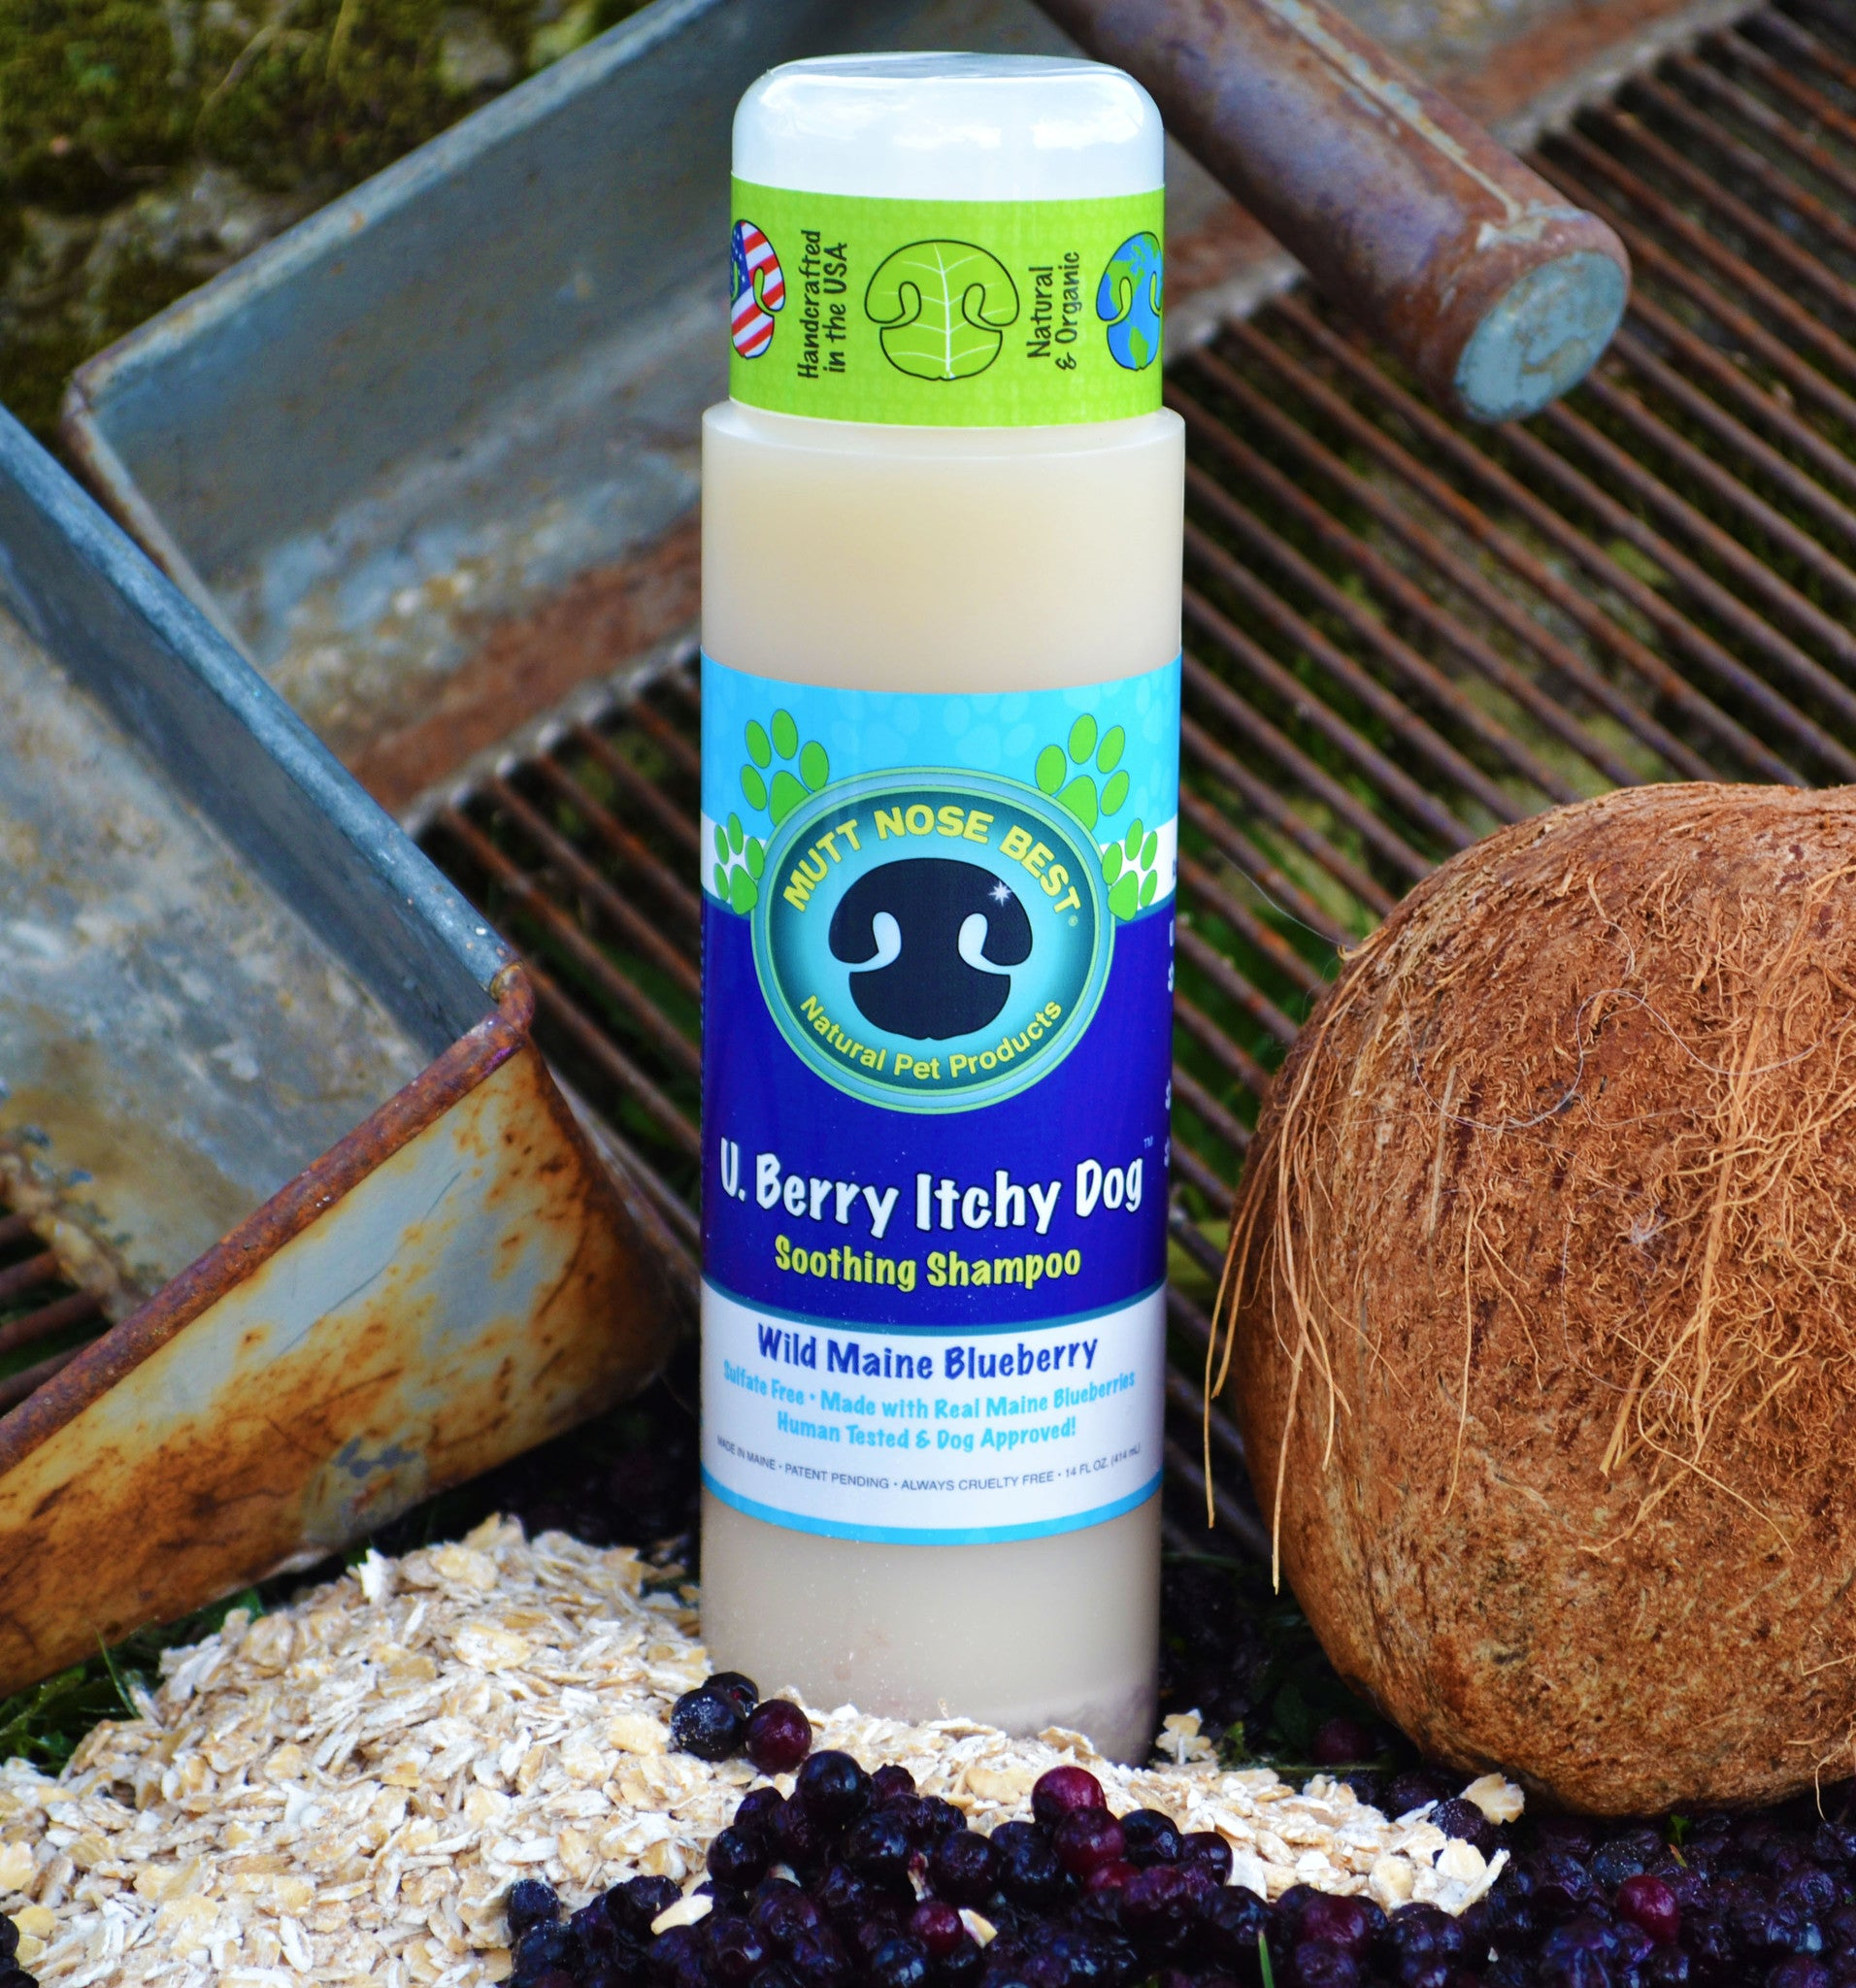 U  Berry Itchy Dog Canine Cleanser